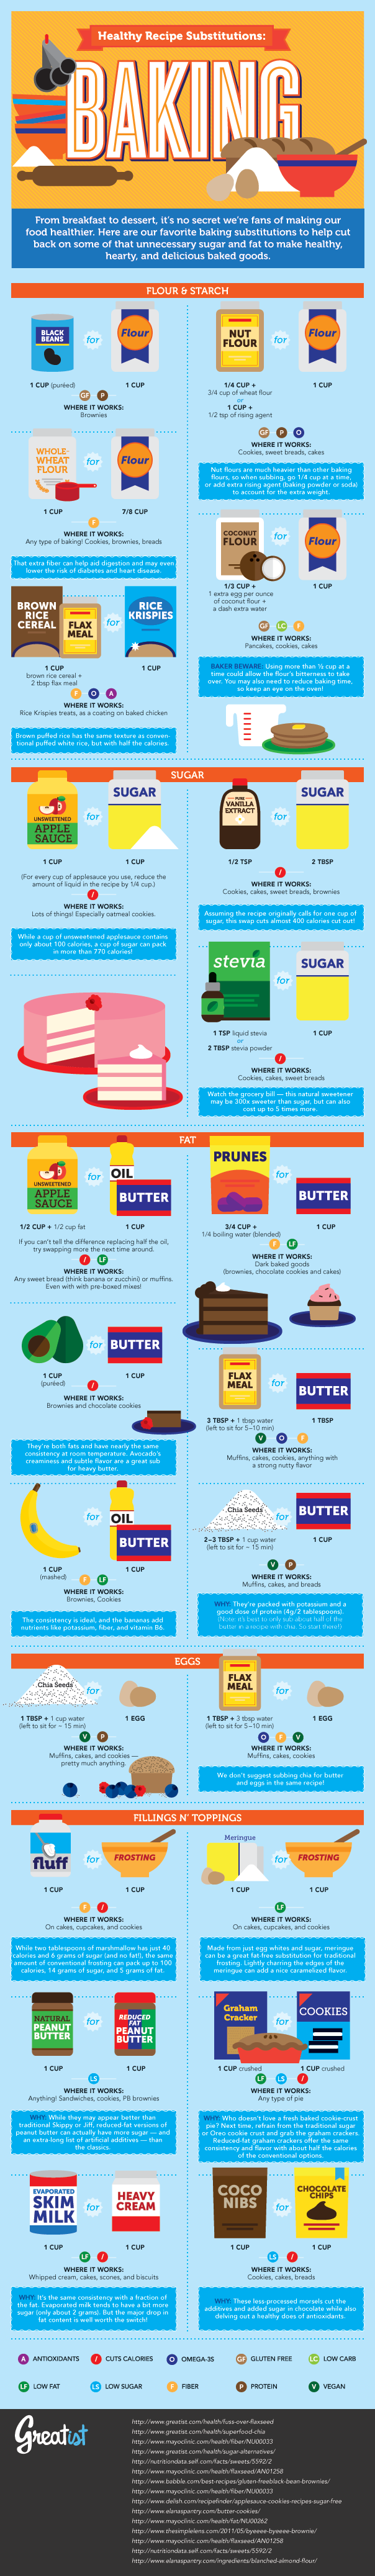 Make Your Baking Recipes Healthier With These Ingredient Substitutions Infographic